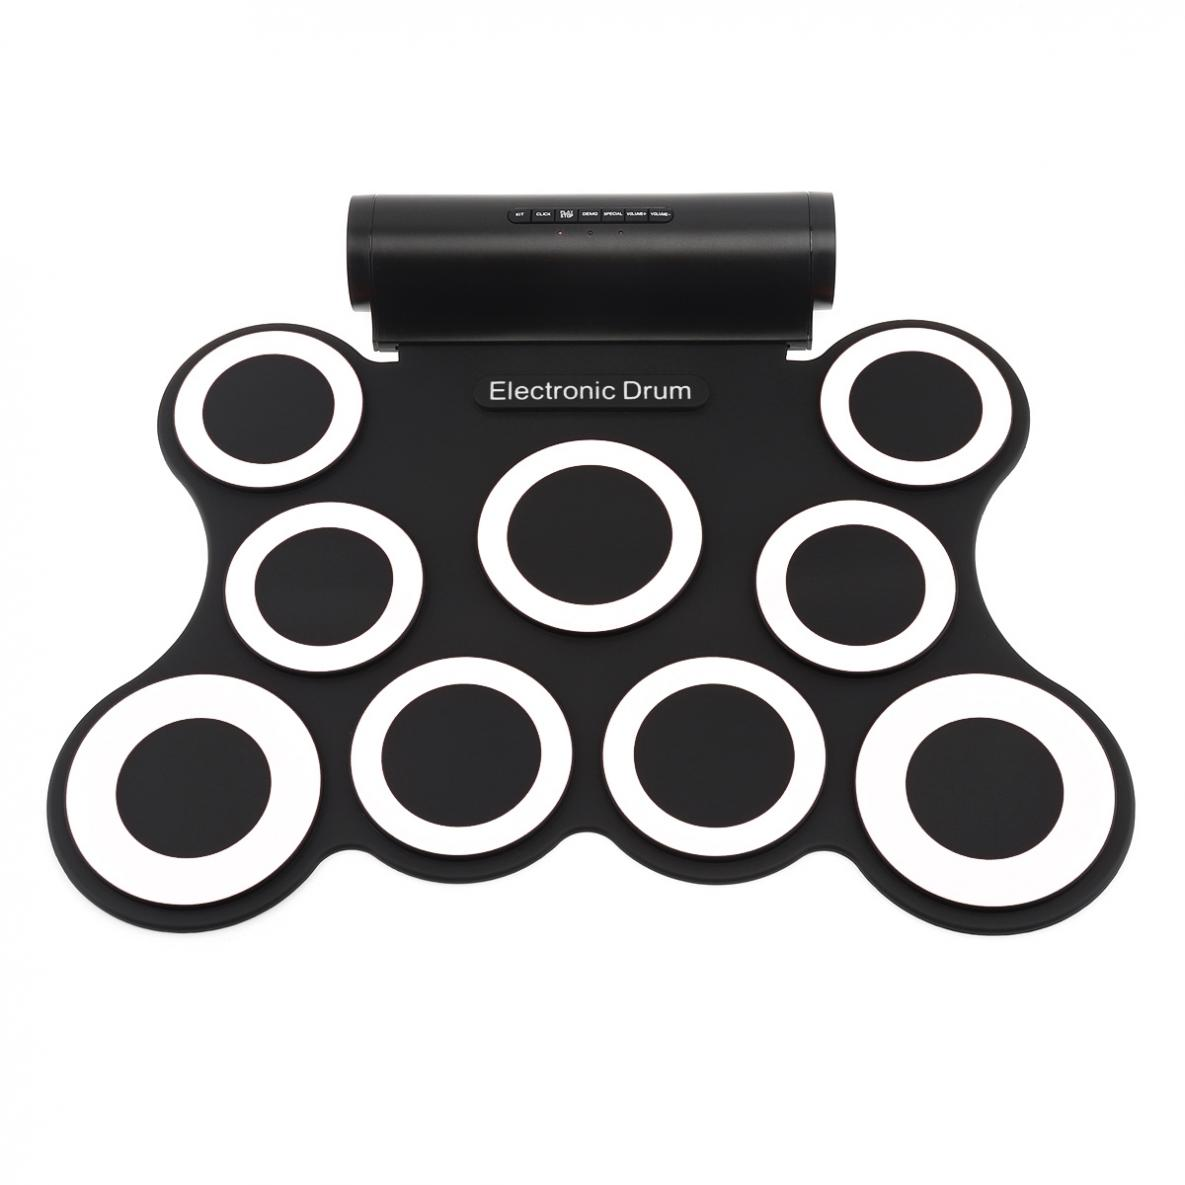 9 Pads Electronic Roll up Silicone MIDI Drum Double Speakers Stereo Electric Drum Kit with Drumsticks and Sustain Pedals in Drum from Sports Entertainment